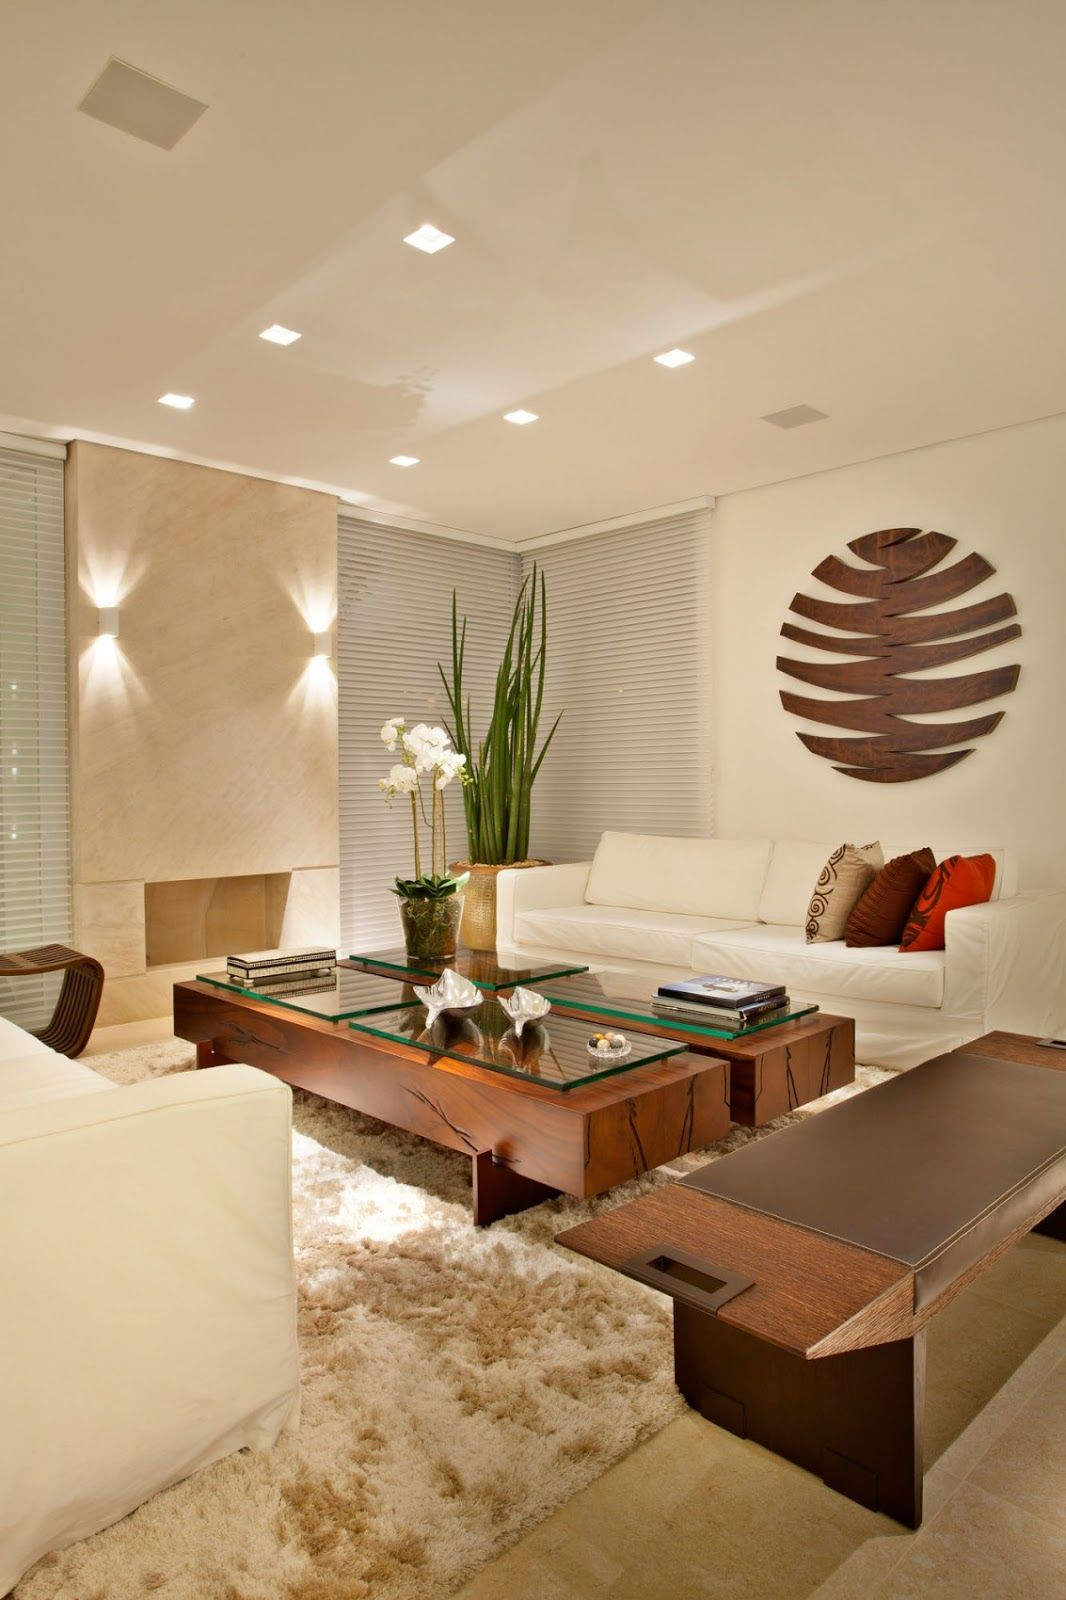 20 inspiring modern living room decoration for your home (With